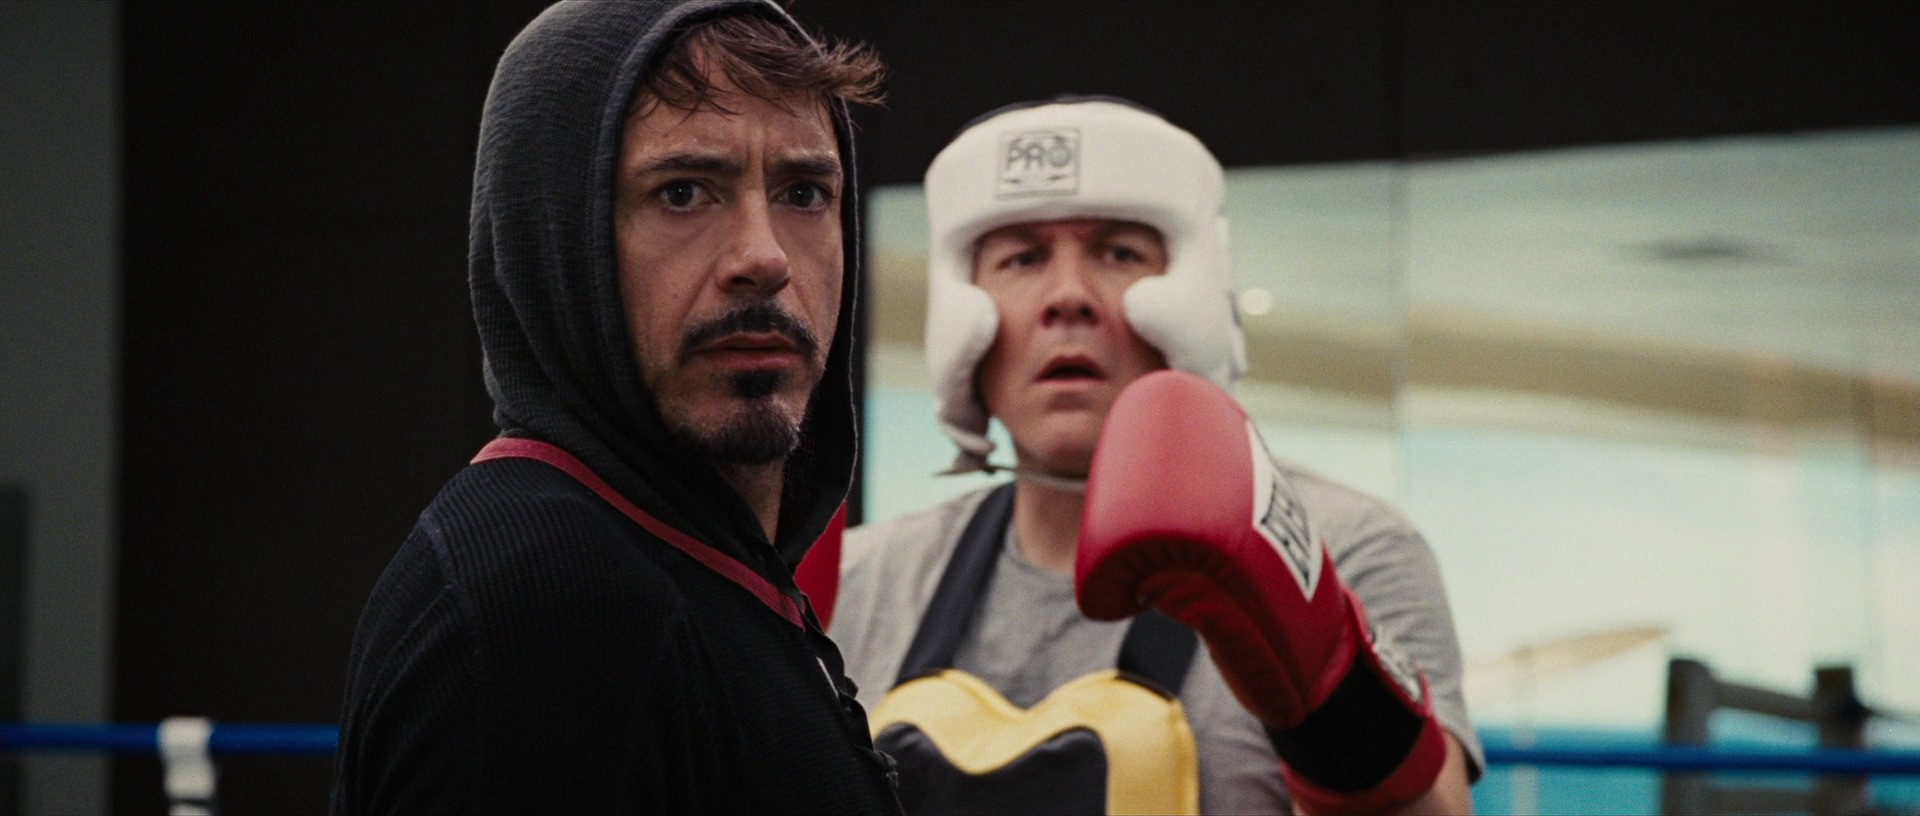 http://caps.pictures/201/0-iron-man2/full/iron-man2-movie-screencaps.com-2684.jpg